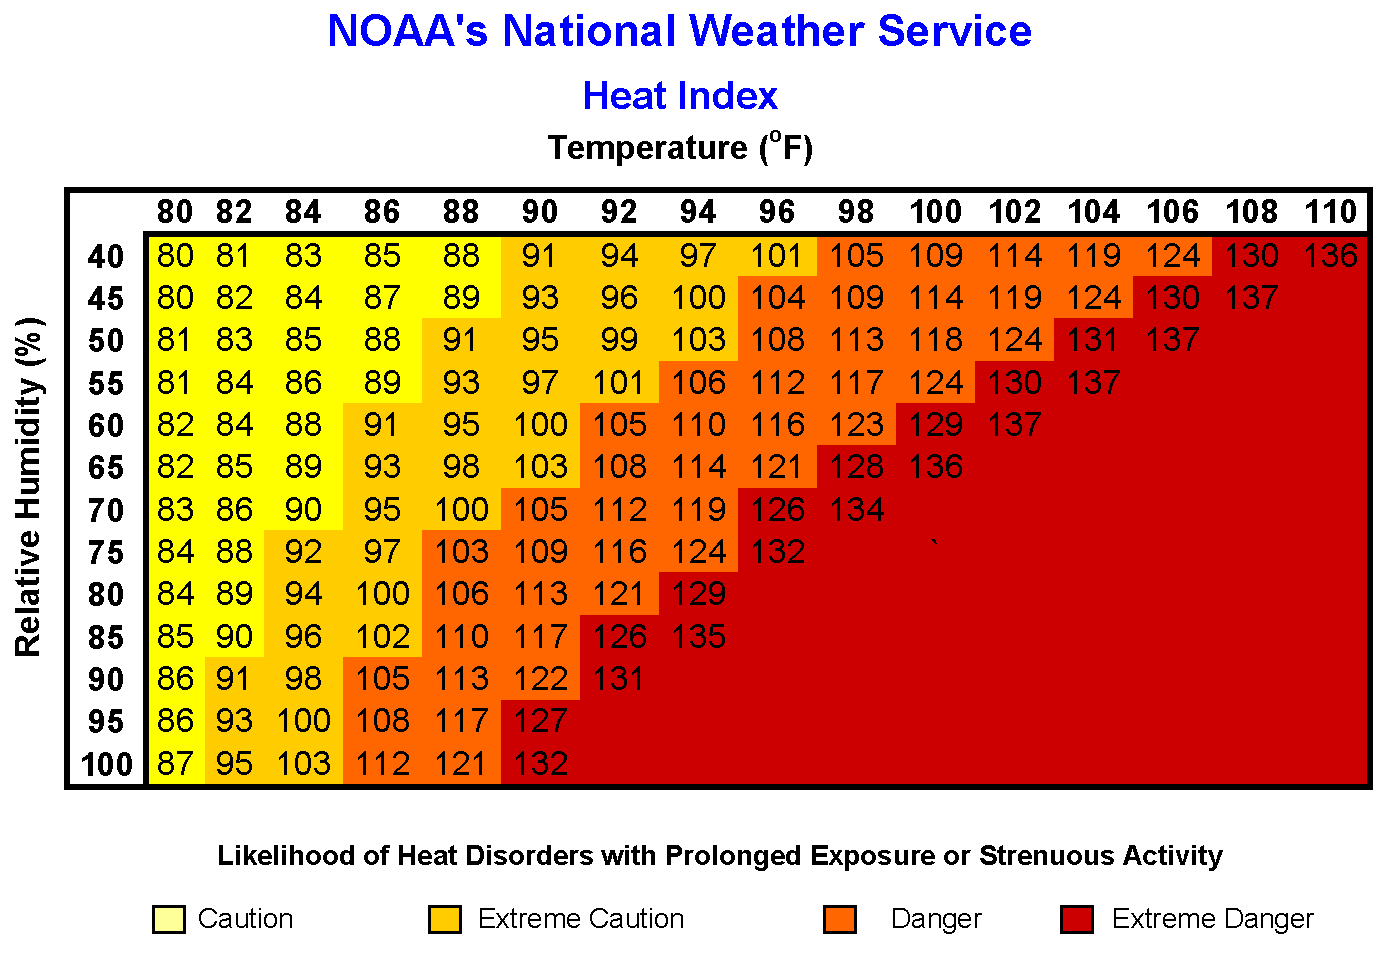 http://www.nws.noaa.gov/om/heat/ht-images/heatindexchart.png